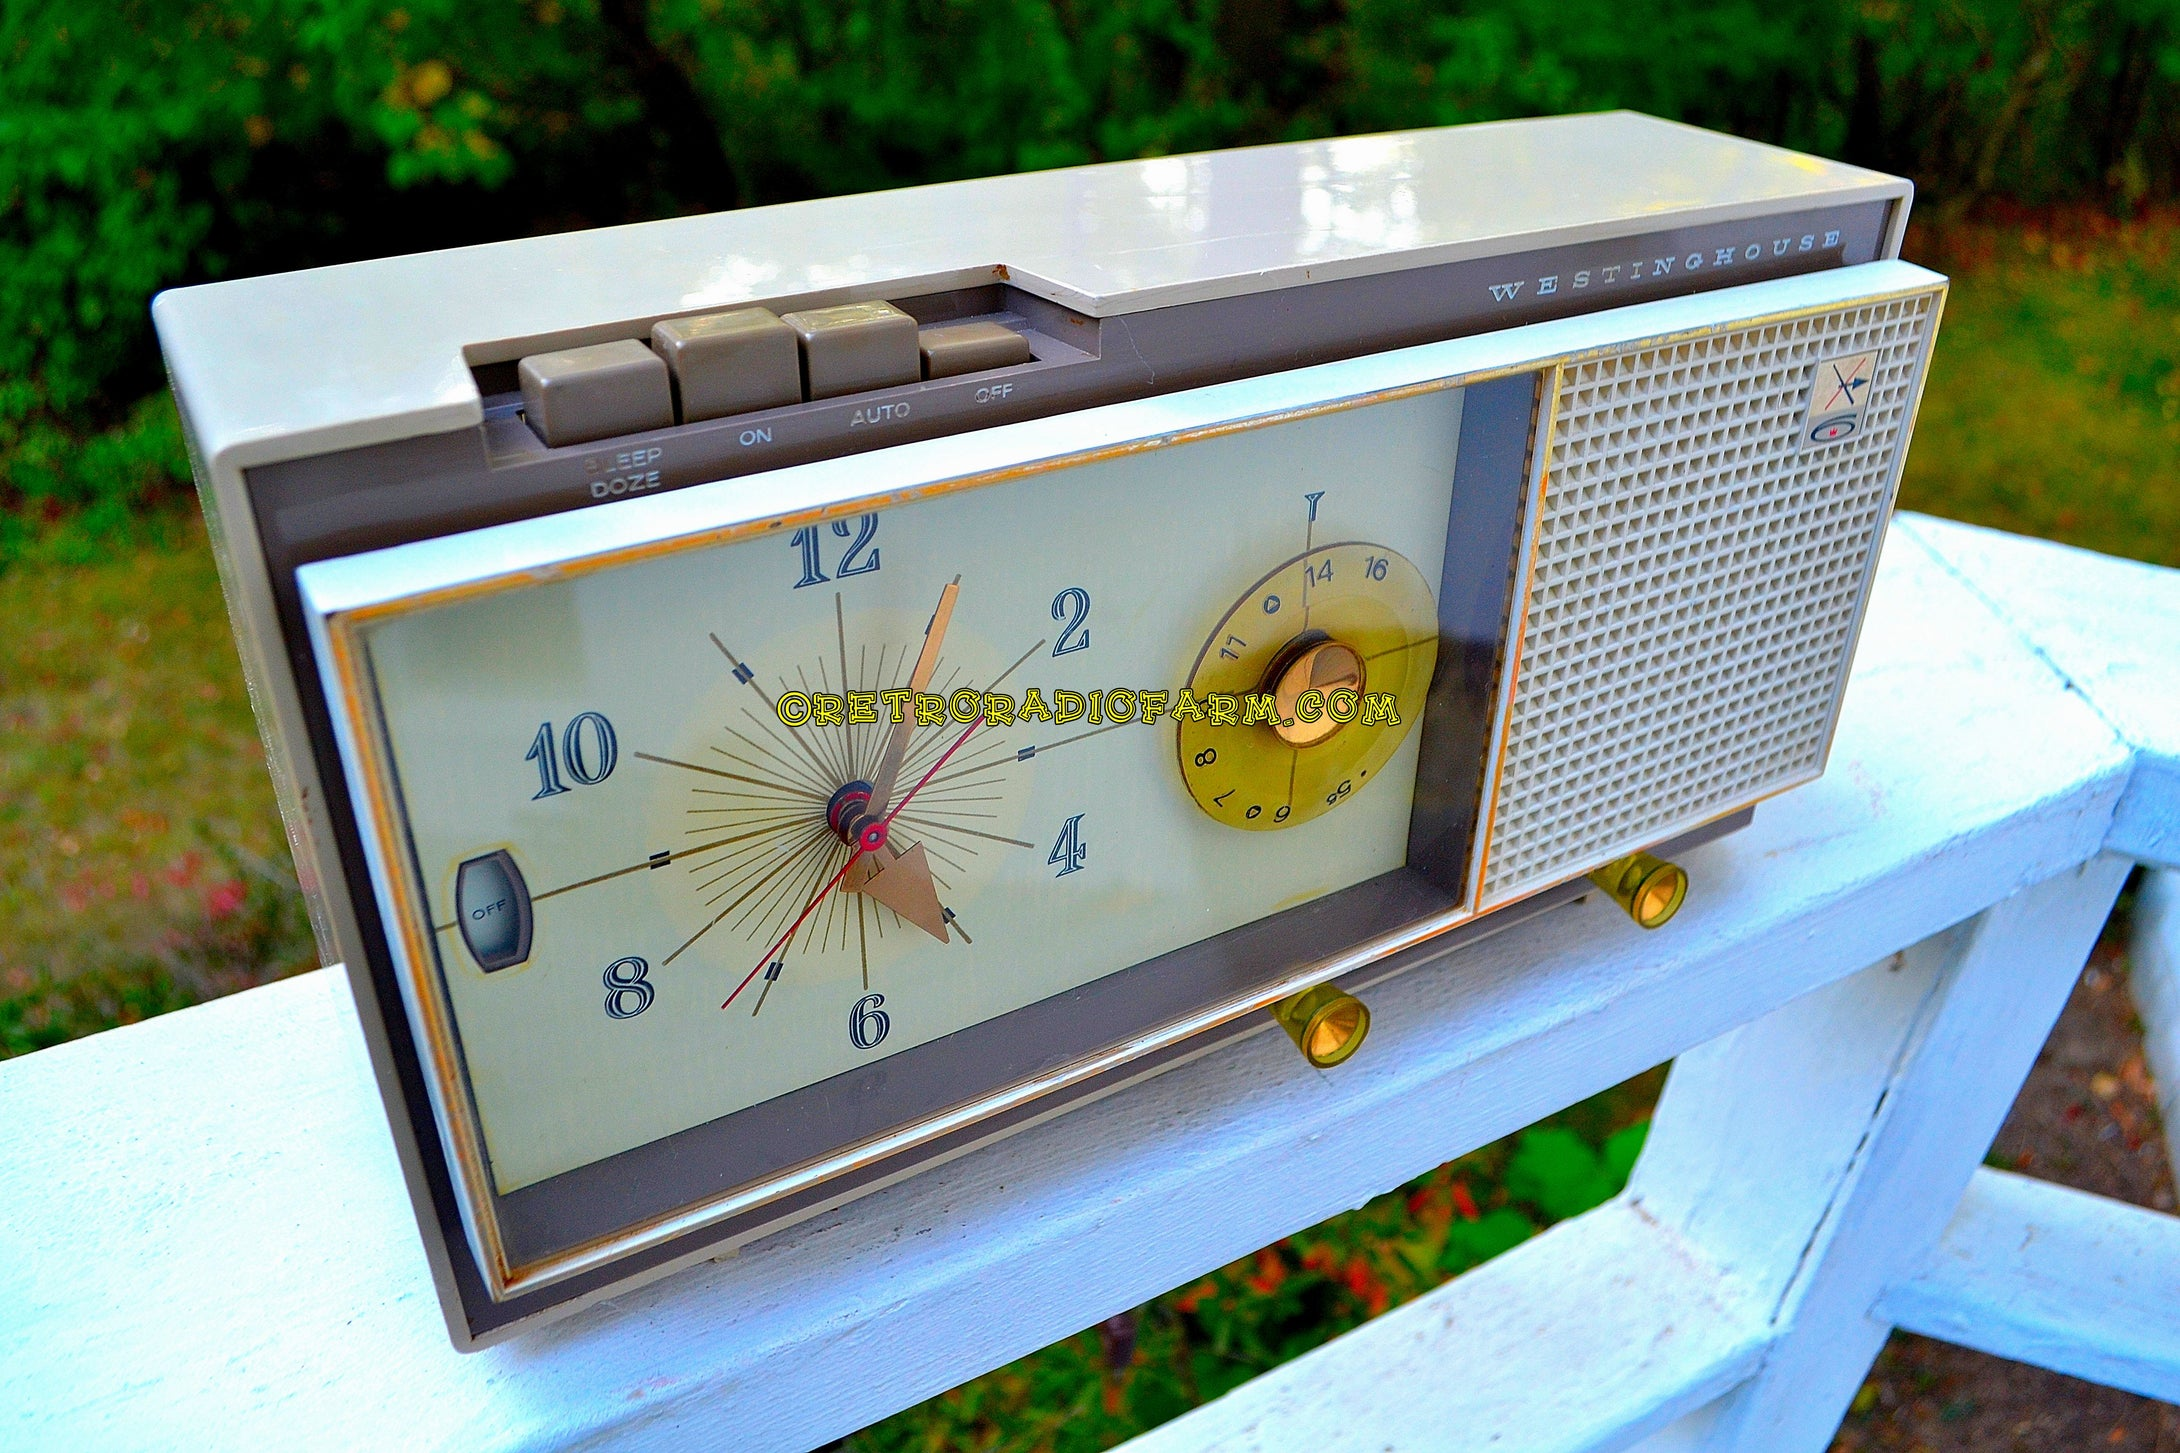 SOLD! - Apr 4, 2018 - CAMEO BEIGE MOCHA Mid Century Retro 1959 Westinghouse Model 864L6 AM Tube Radio Alarm Clock Totally Restored! - [product_type} - Westinghouse - Retro Radio Farm